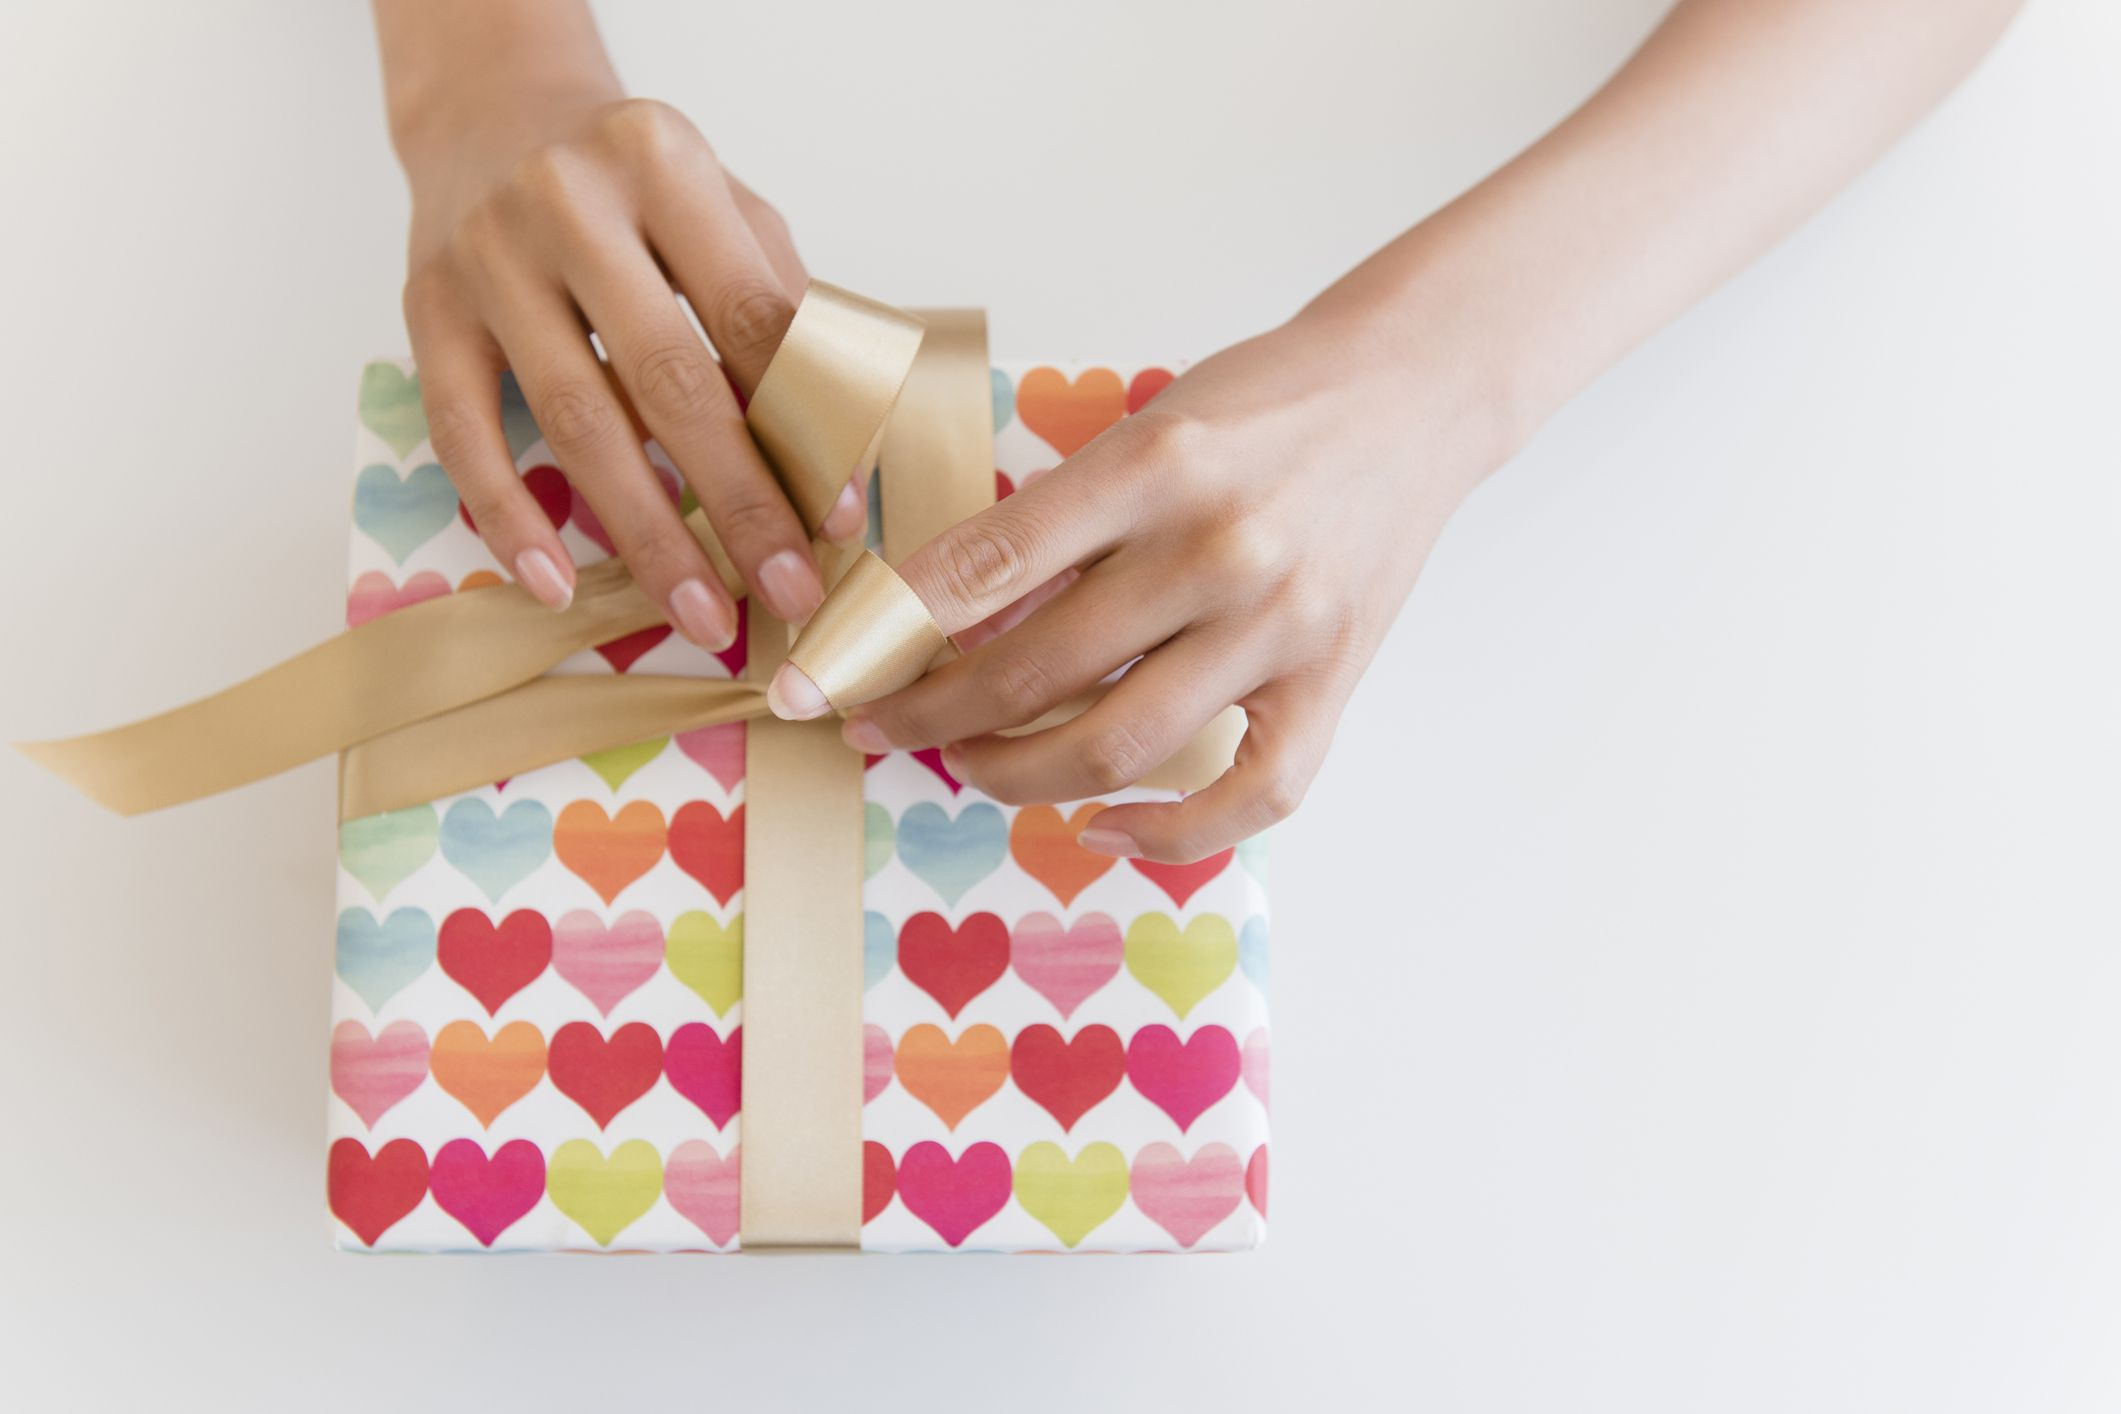 Combine Gift Giving and Altruism by Shopping Through Your Favorite Charities